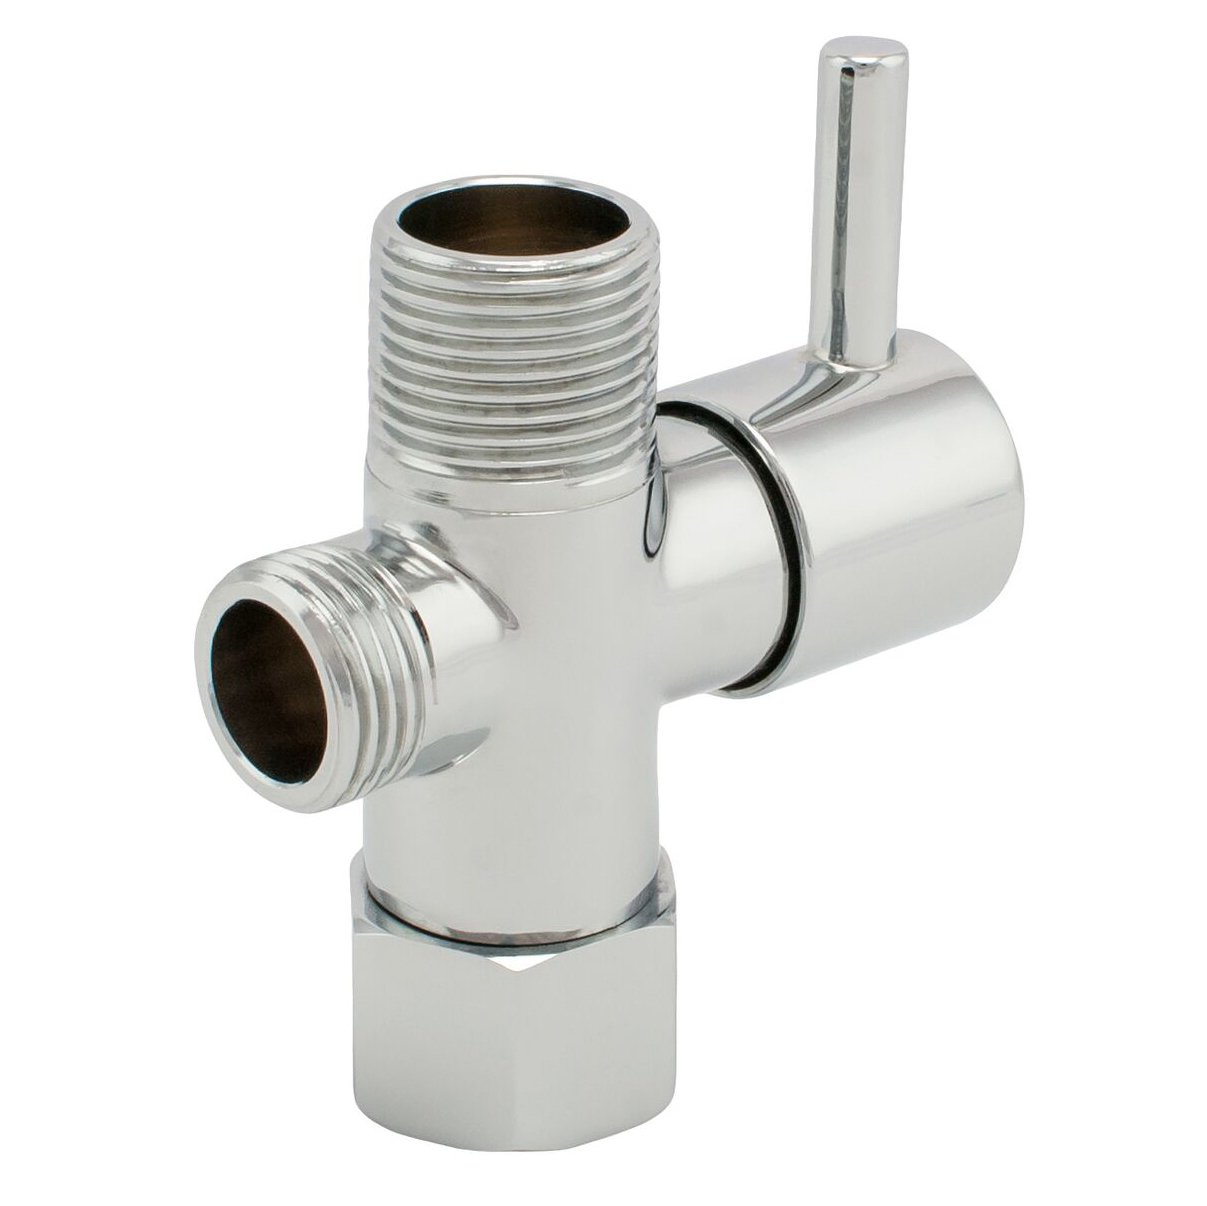 ShowerMaxx Traditional Metal Brass Diverter with Shut-off, T-adapter Valve Polished Chrome 3-way Tee Connector for Handheld Bidet and Sprayer 15/16'' Male and G 1/2, Fits Standard Bathroom Toilet